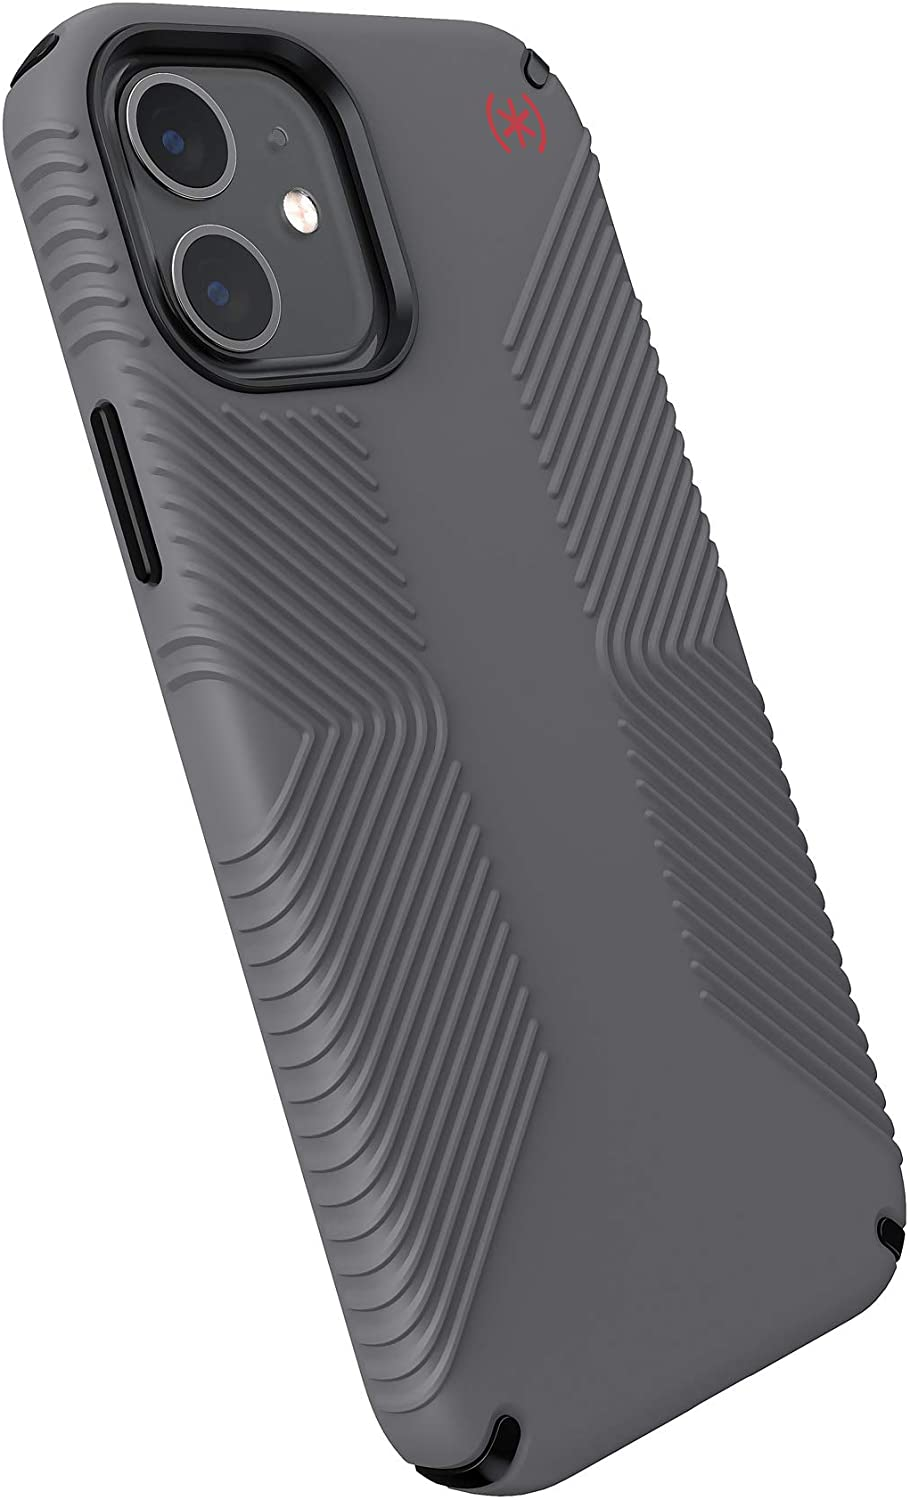 Speck Products Presidio2 Grip iPhone 12, iPhone 12 Pro Case, Graphite Grey/Graphite Grey/Bold Red